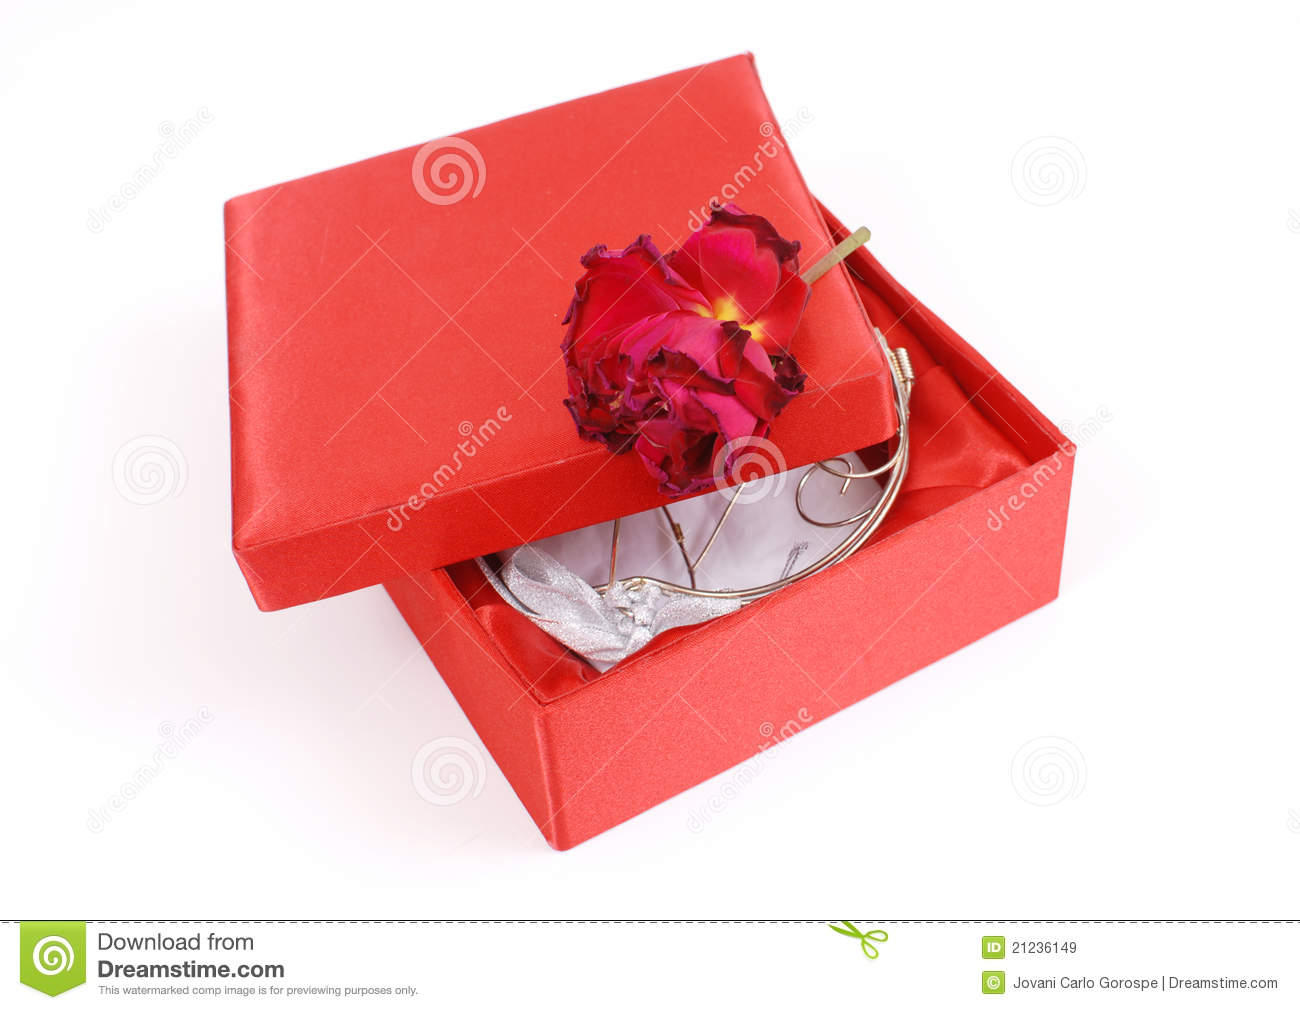 A Gift For My Wife Part - 49: Royalty-Free Stock Photo. Download Gift For My Wife ...